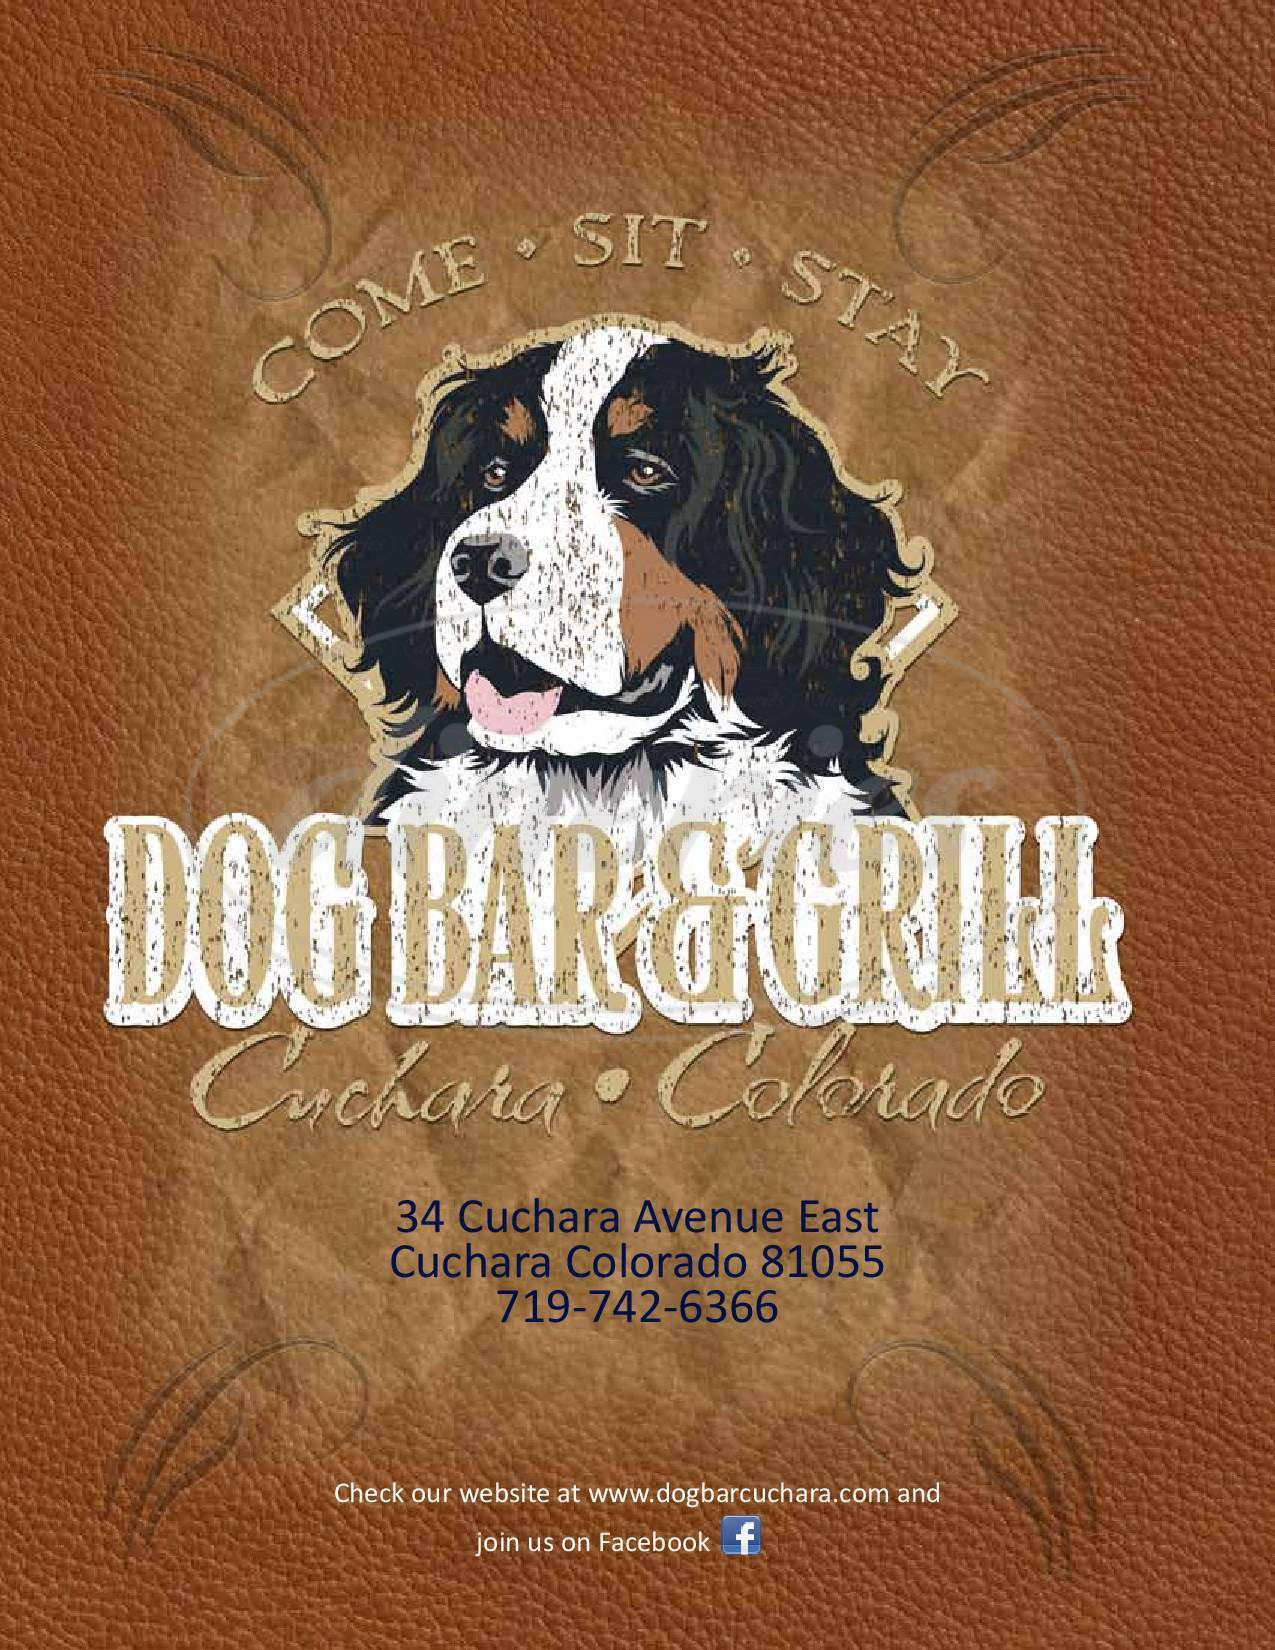 menu for The Dog Bar